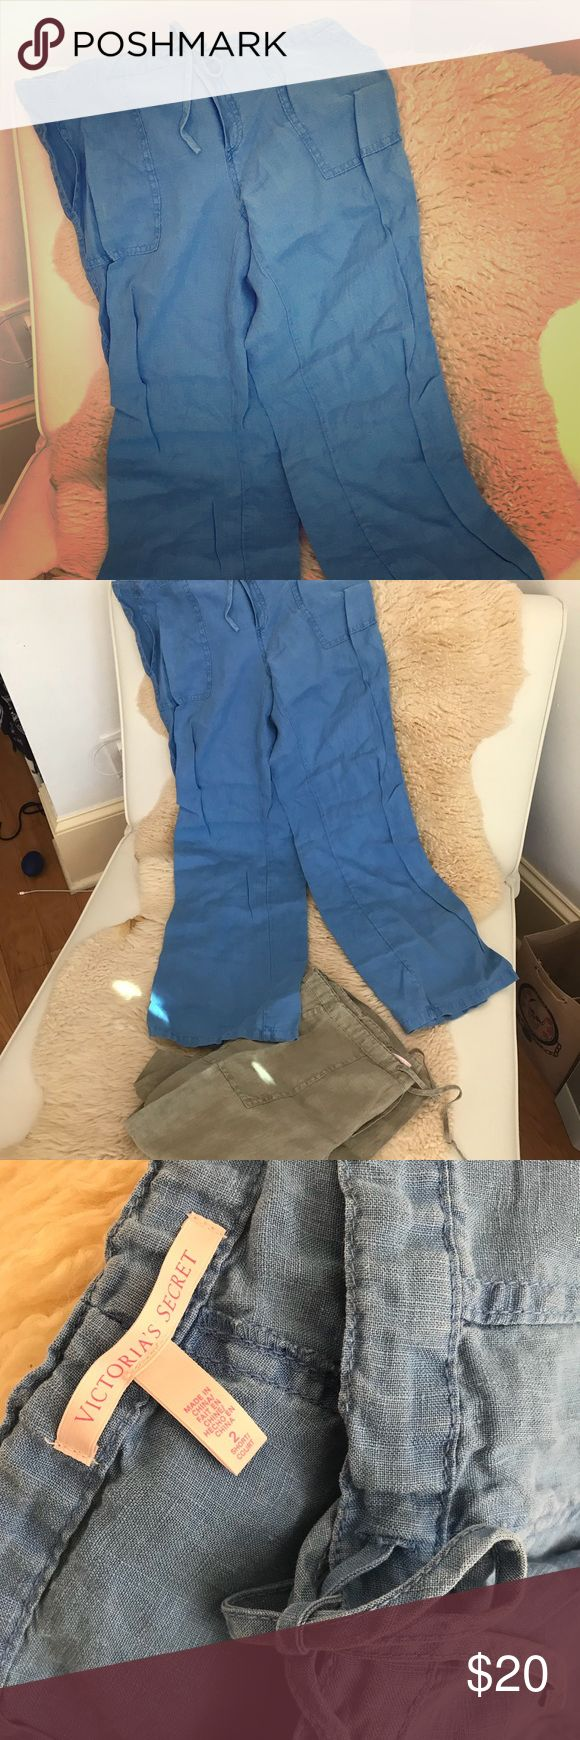 Victoria's Secret Short/Petite Linen Pant linen pant by Victoria's Secret in sky blue. 2nd pair in olive green. never worn. lightweight, elegant, chic, for the woman who makes style happen. size 2/short. drawstring waist. perfect summer/spring and/or caribbean getaway beachwear. bundle and save! 2 for $30😻 PINK Victoria's Secret Pants Capris